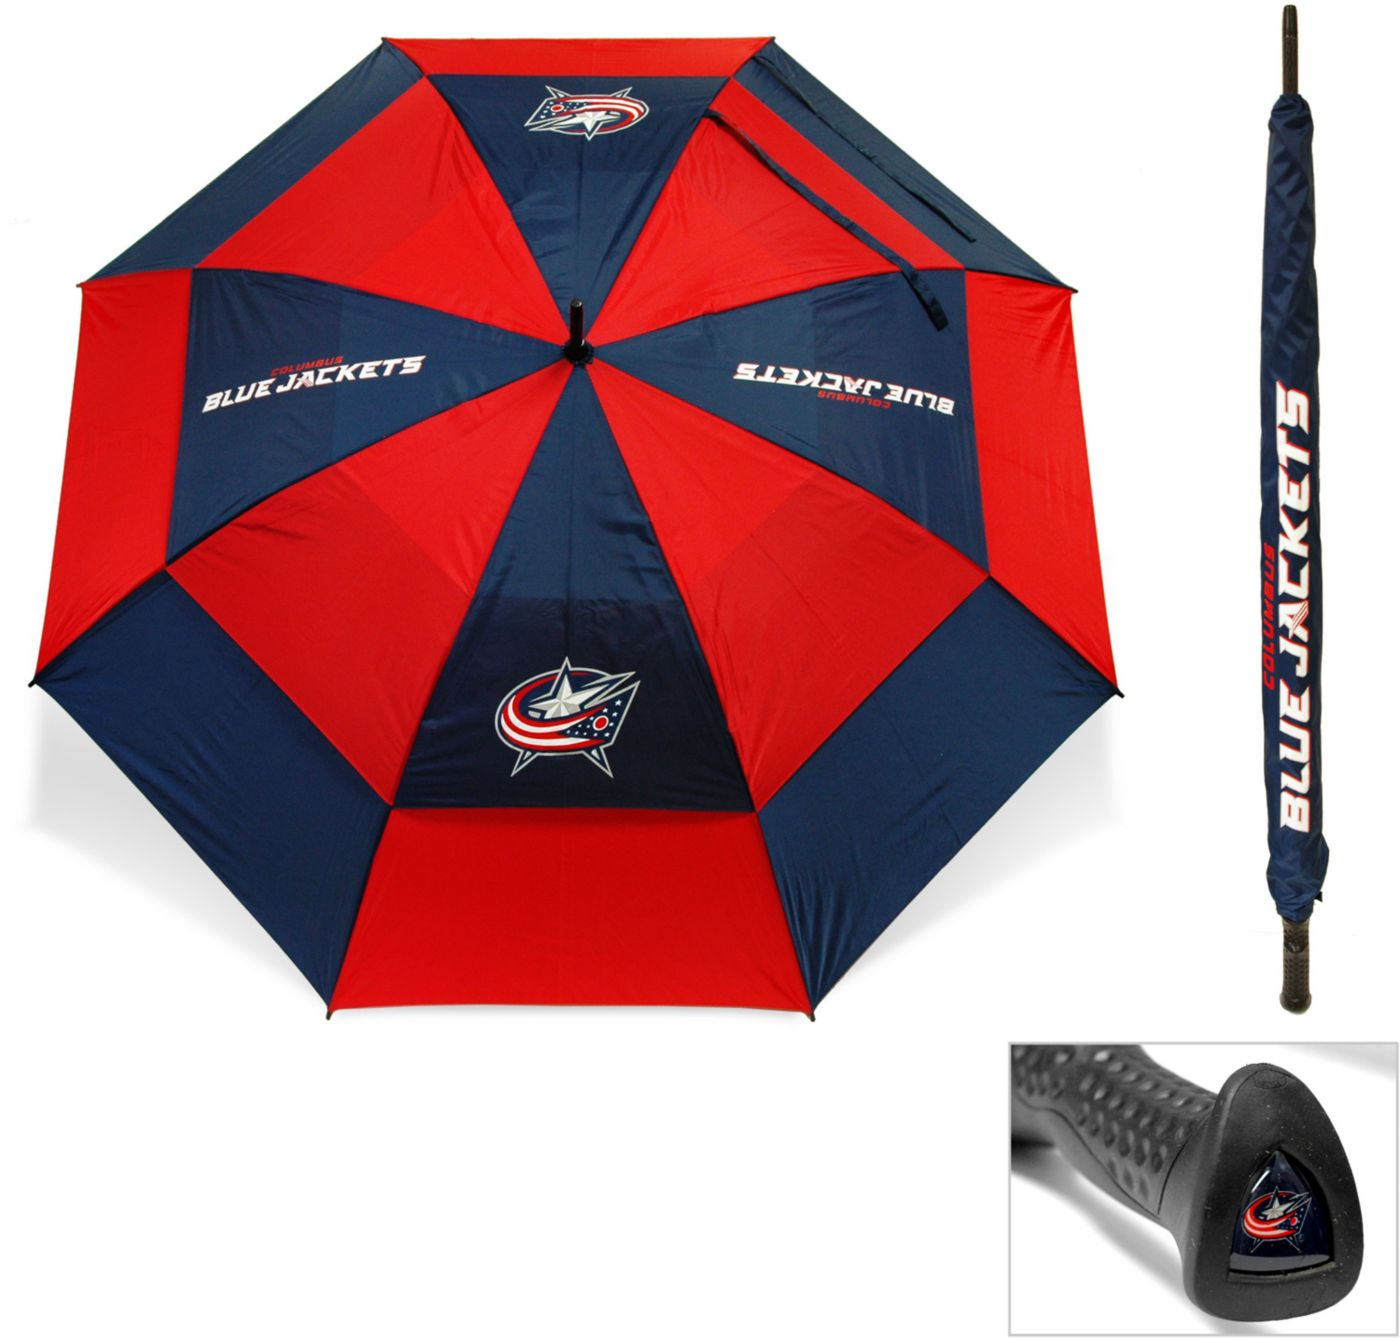 "Team Golf Columbus Blue Jackets 62"" Double Canopy Umbrella"